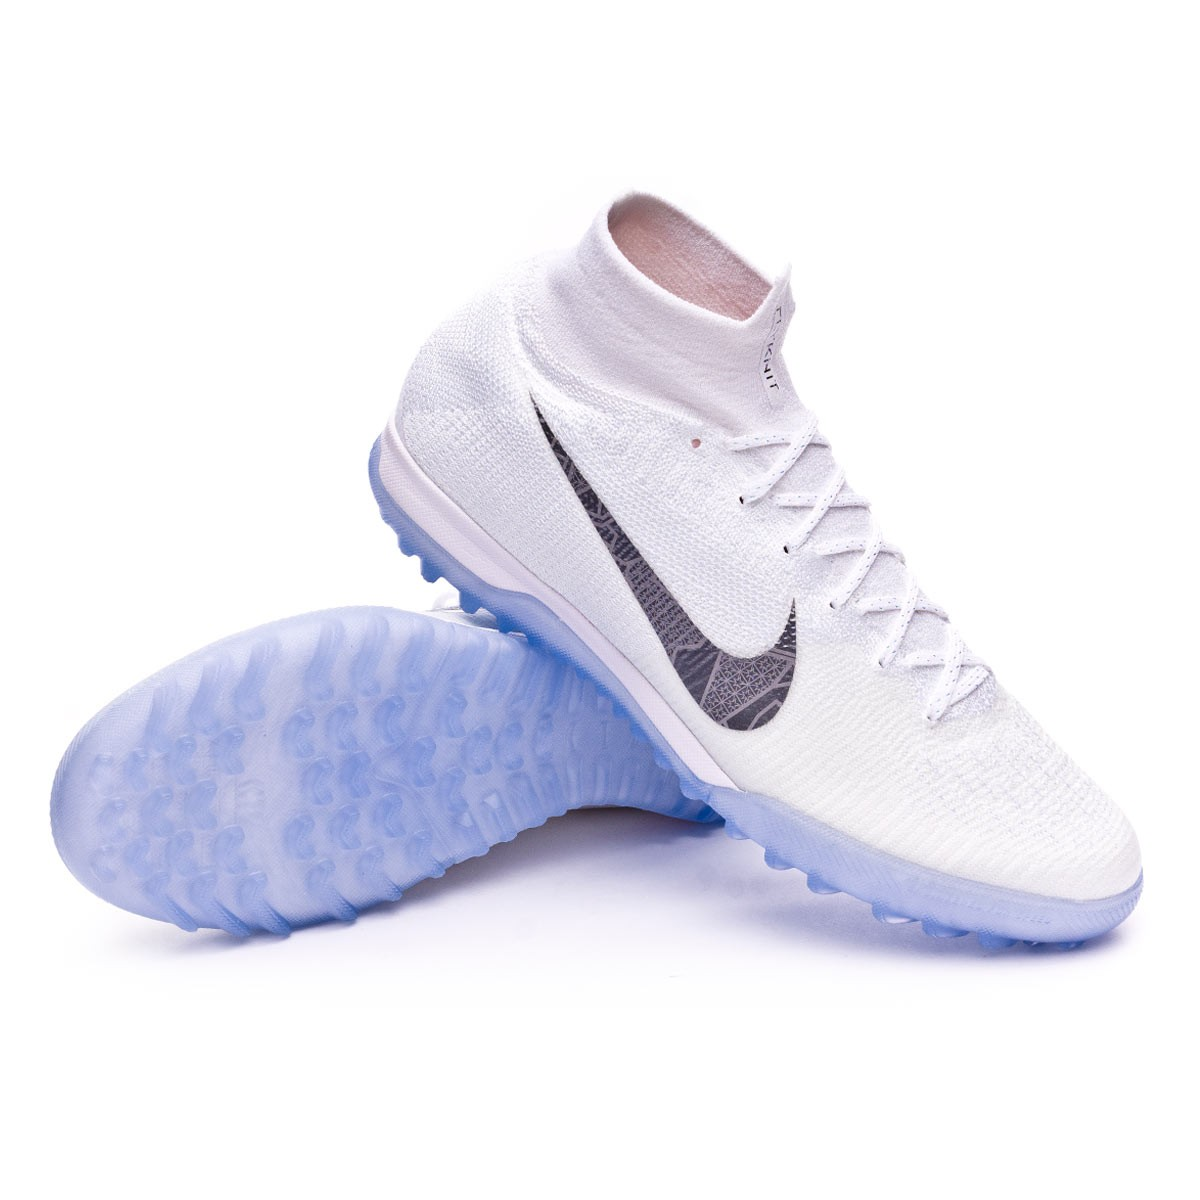 ... Zapatilla Mercurial SuperflyX VI Elite Turf White-Metallic cool grey.  CATEGORY 19cfd8c371b5a